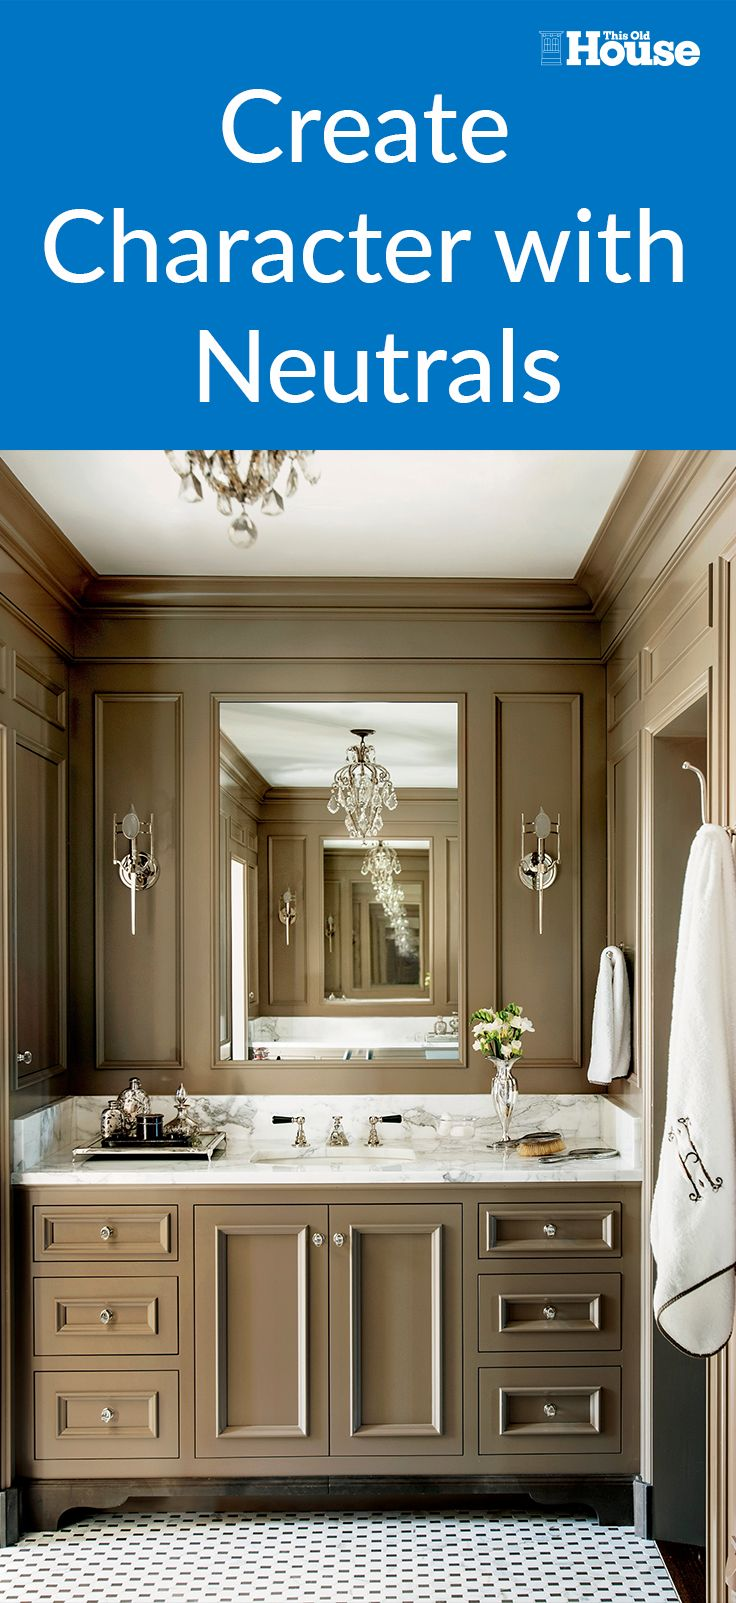 Best Bathroom Design Images Onbathroom Ideas